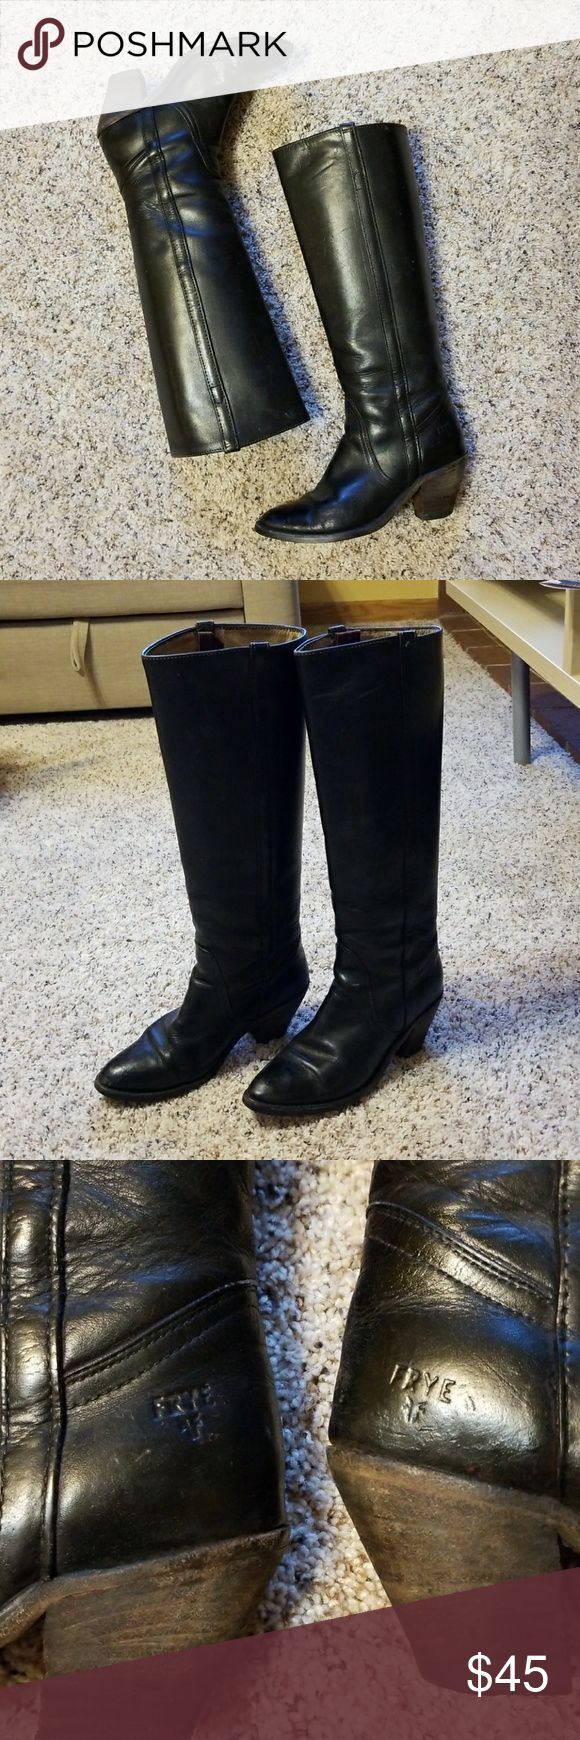 """FRYE - Black Leather Below-the-Knee Riding Boots Gently used Frye riding boots. There are some wrinkles on leather due to normal wear.  Heel height: 2 3/4"""" Frye Shoes Heeled Boots"""